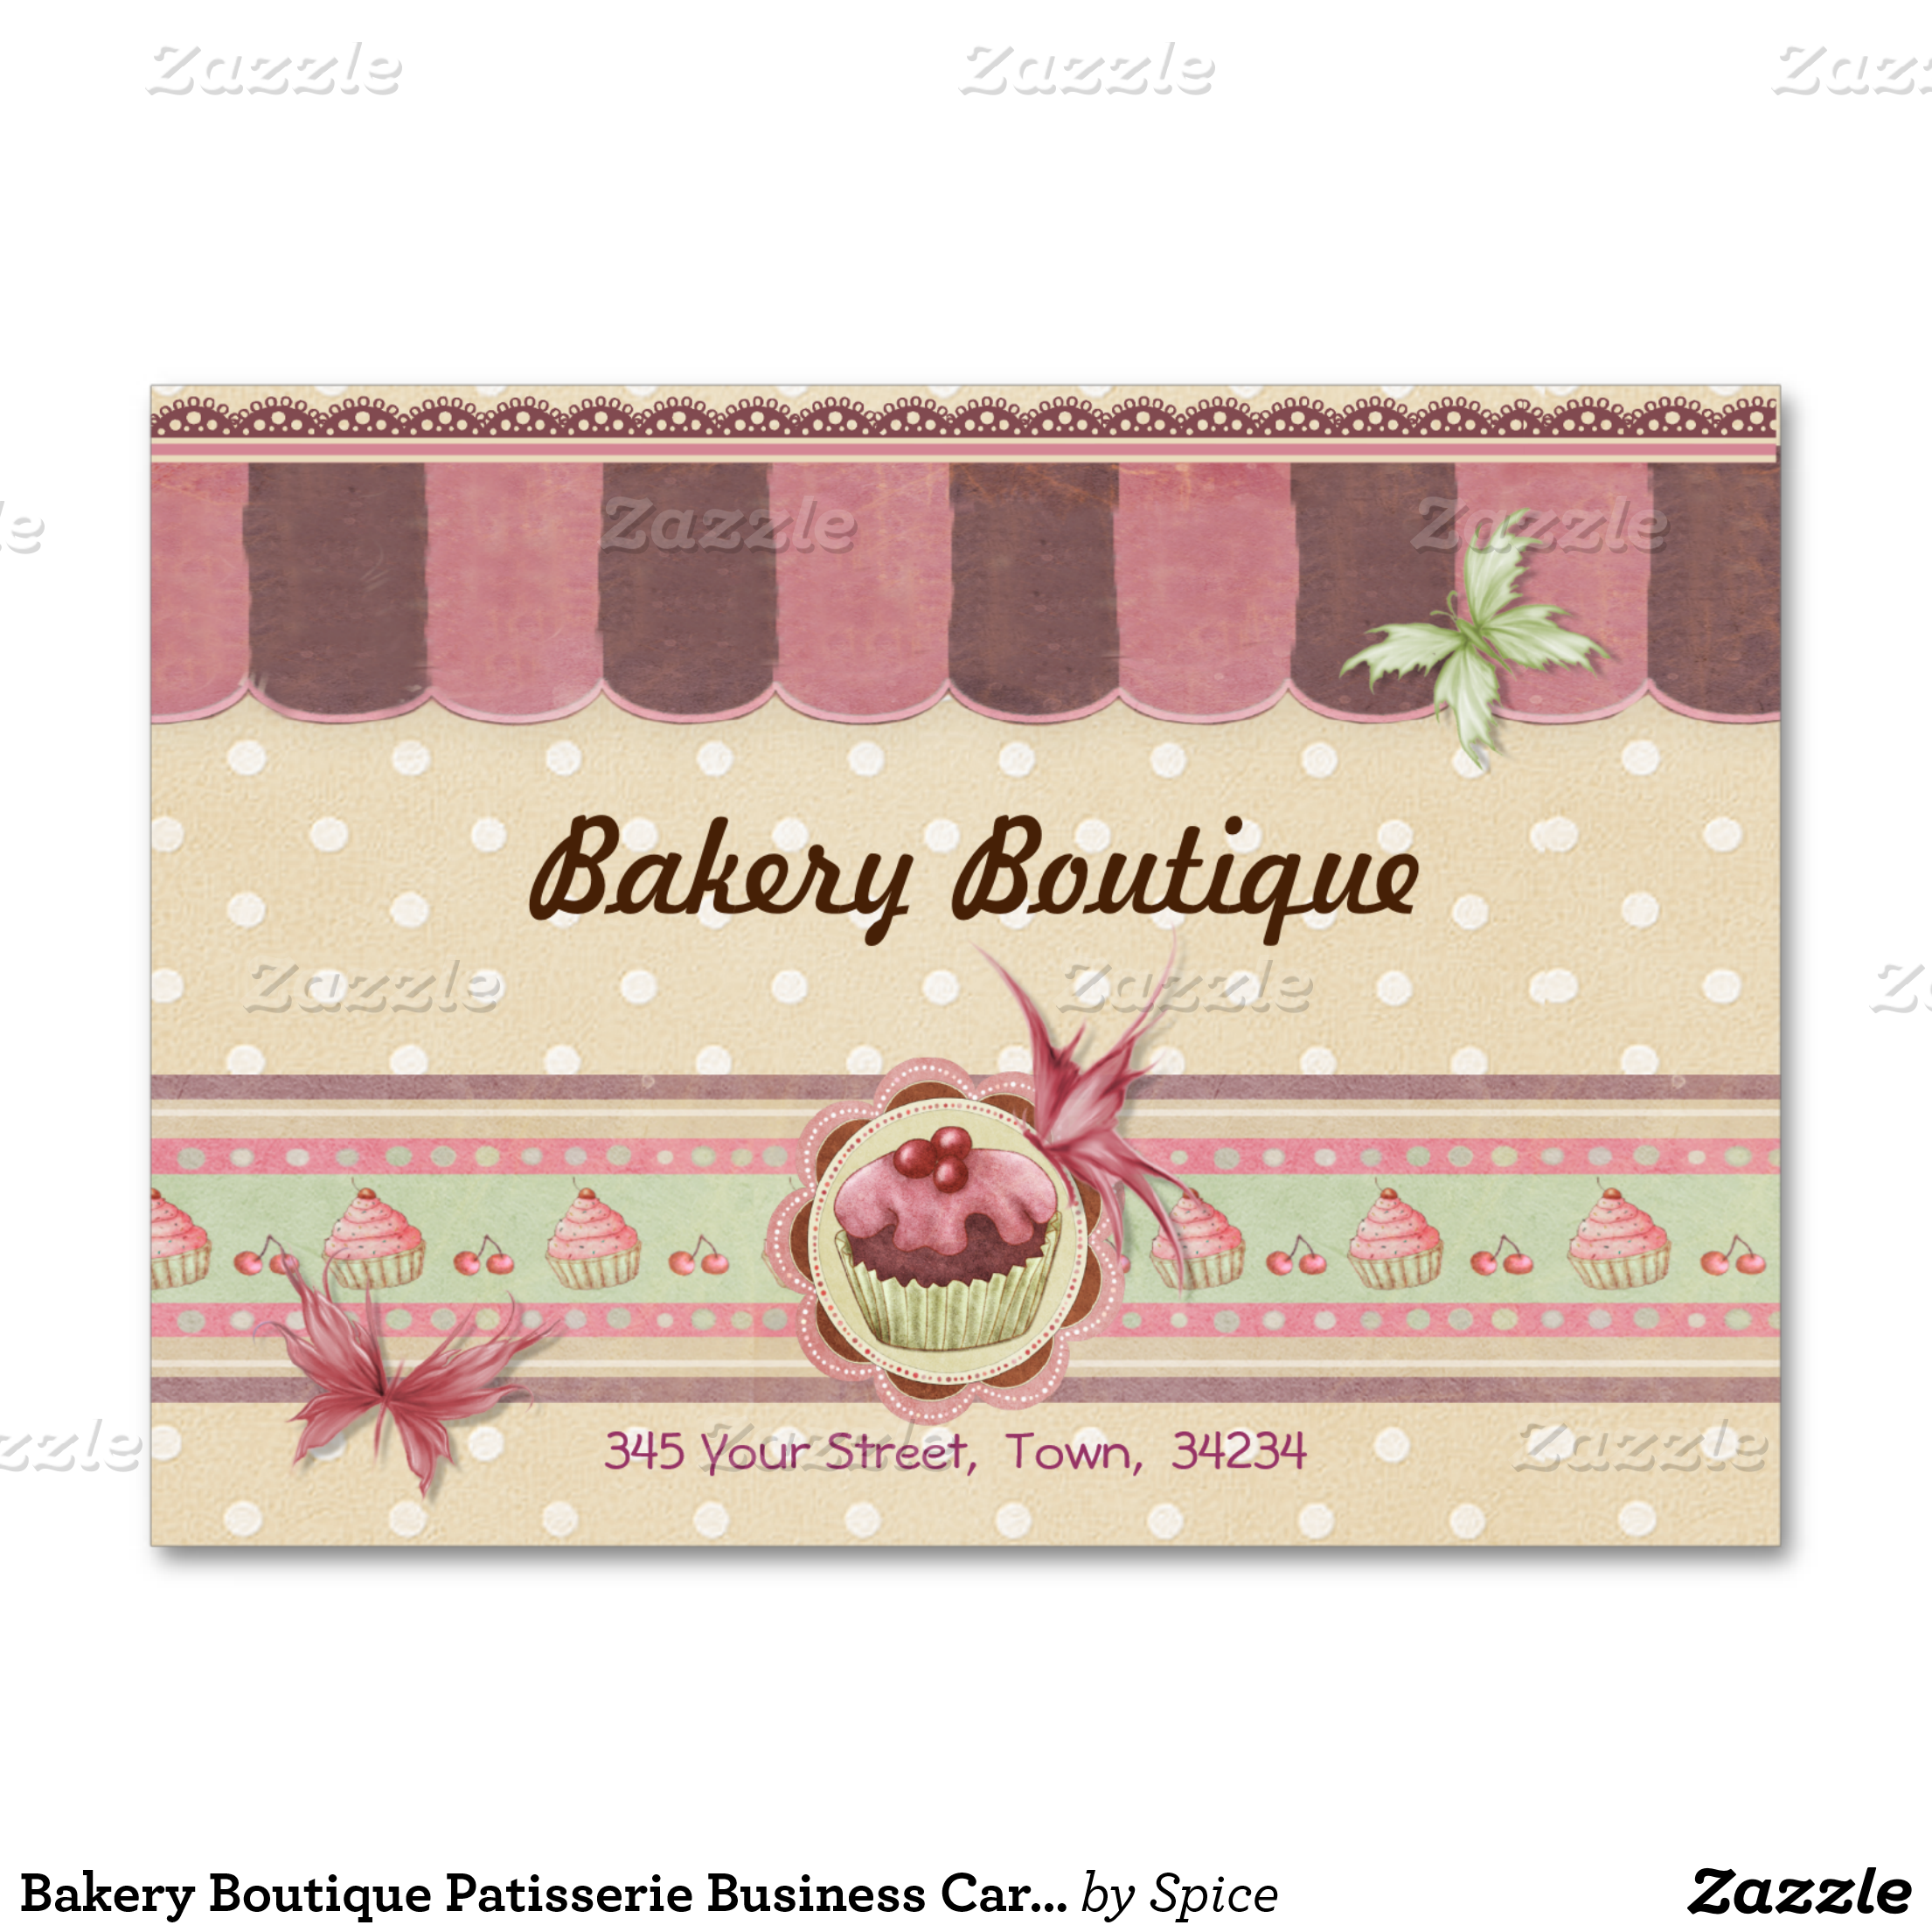 Bakery boutique patisserie business card 3 patisserie business bakery boutique patisserie business card 3 colourmoves